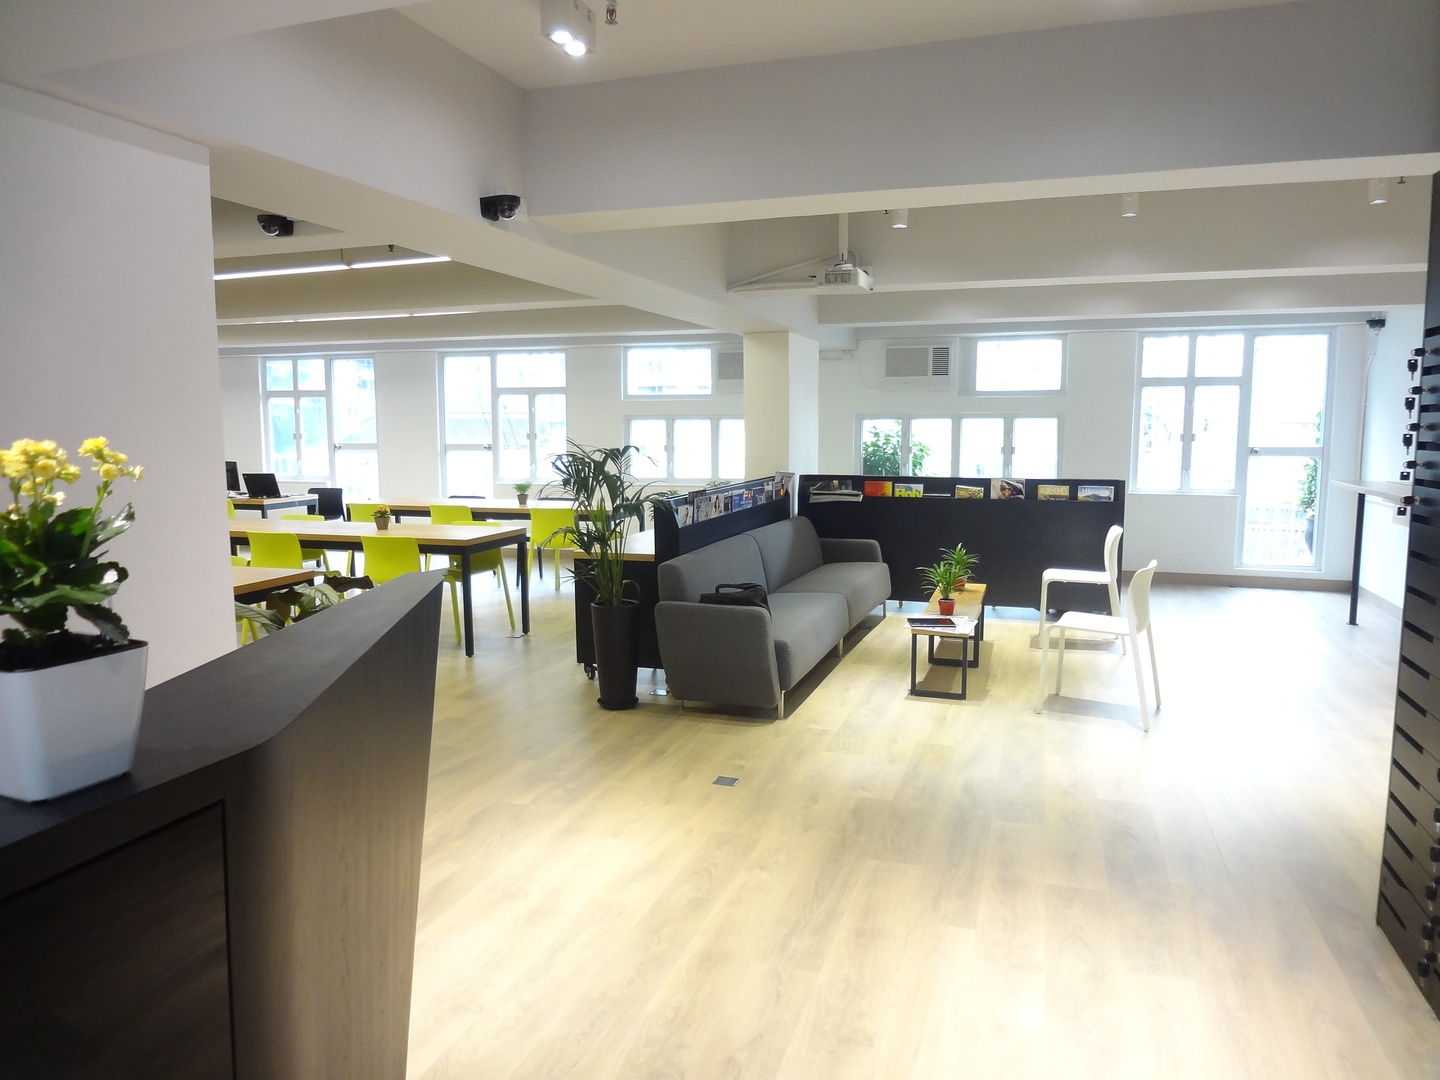 Hong Kong conference rooms Meetingraum Wynd Co-Working Space - Private Office for 2 image 2